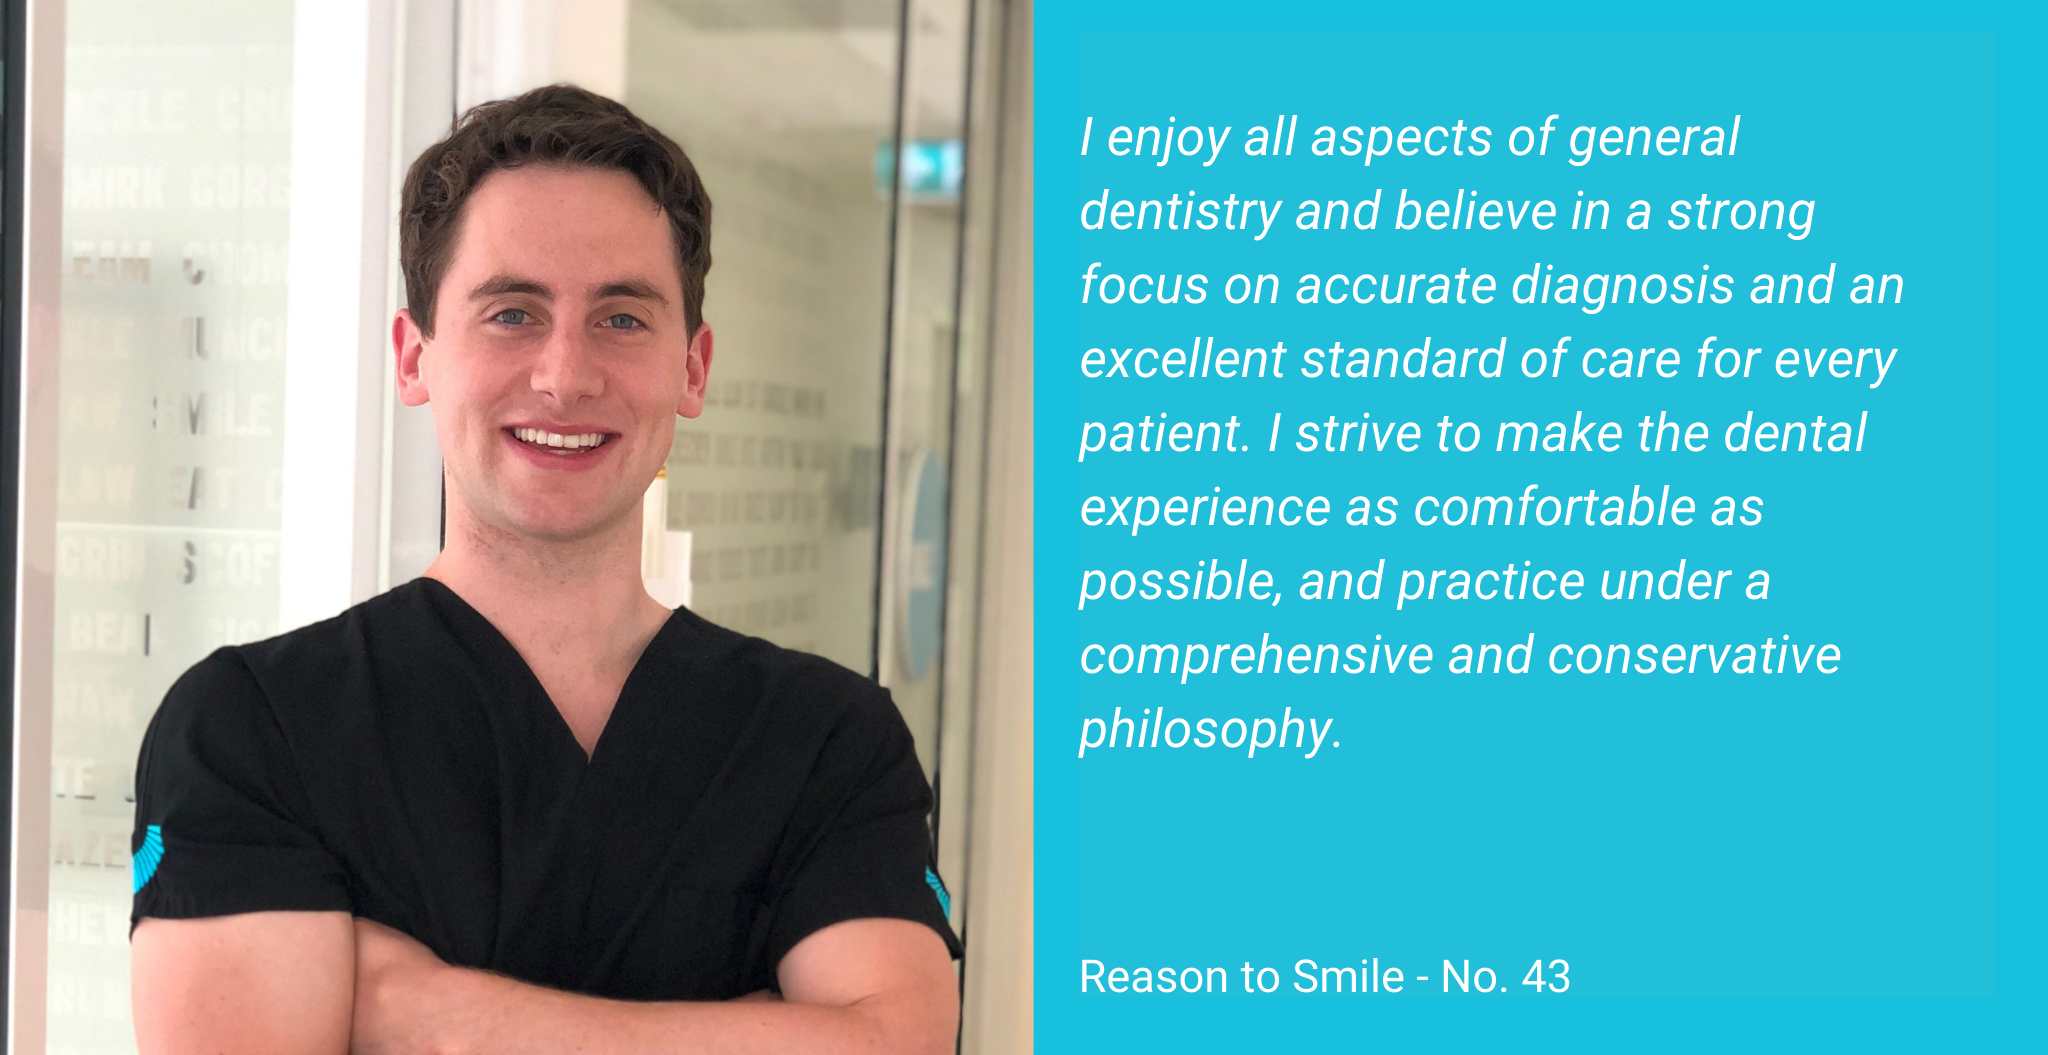 Dr Joseph O'Connor Johnson is an Oral Health Specialist